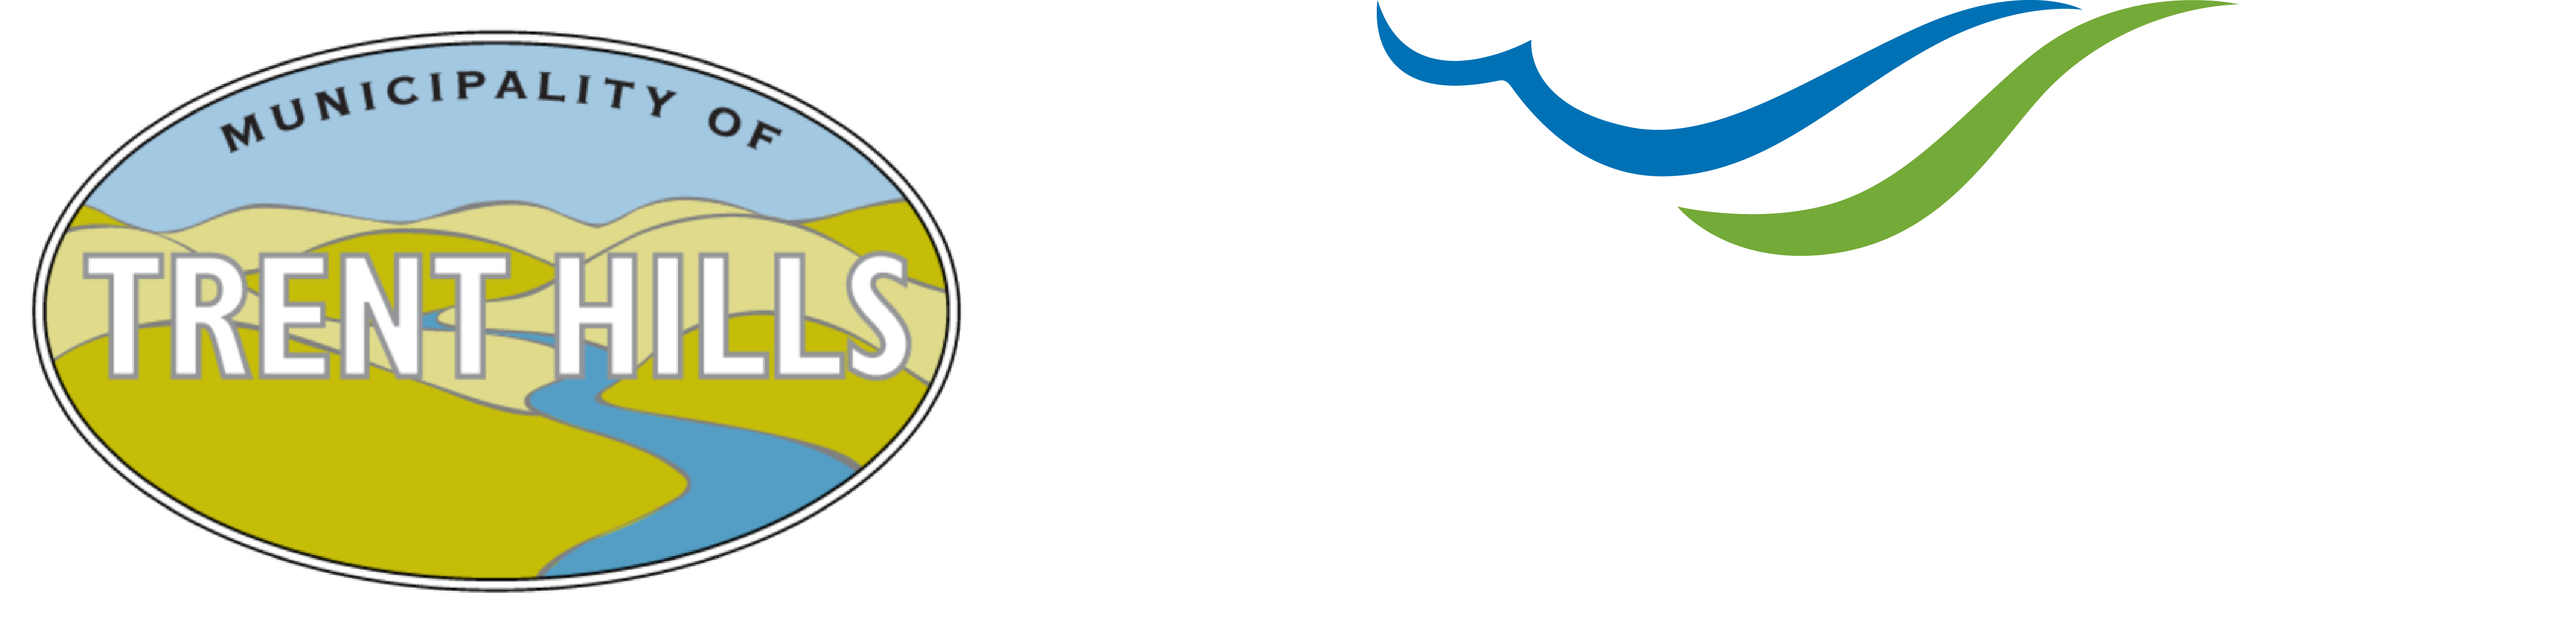 Trent Hills and Northumberland County logos